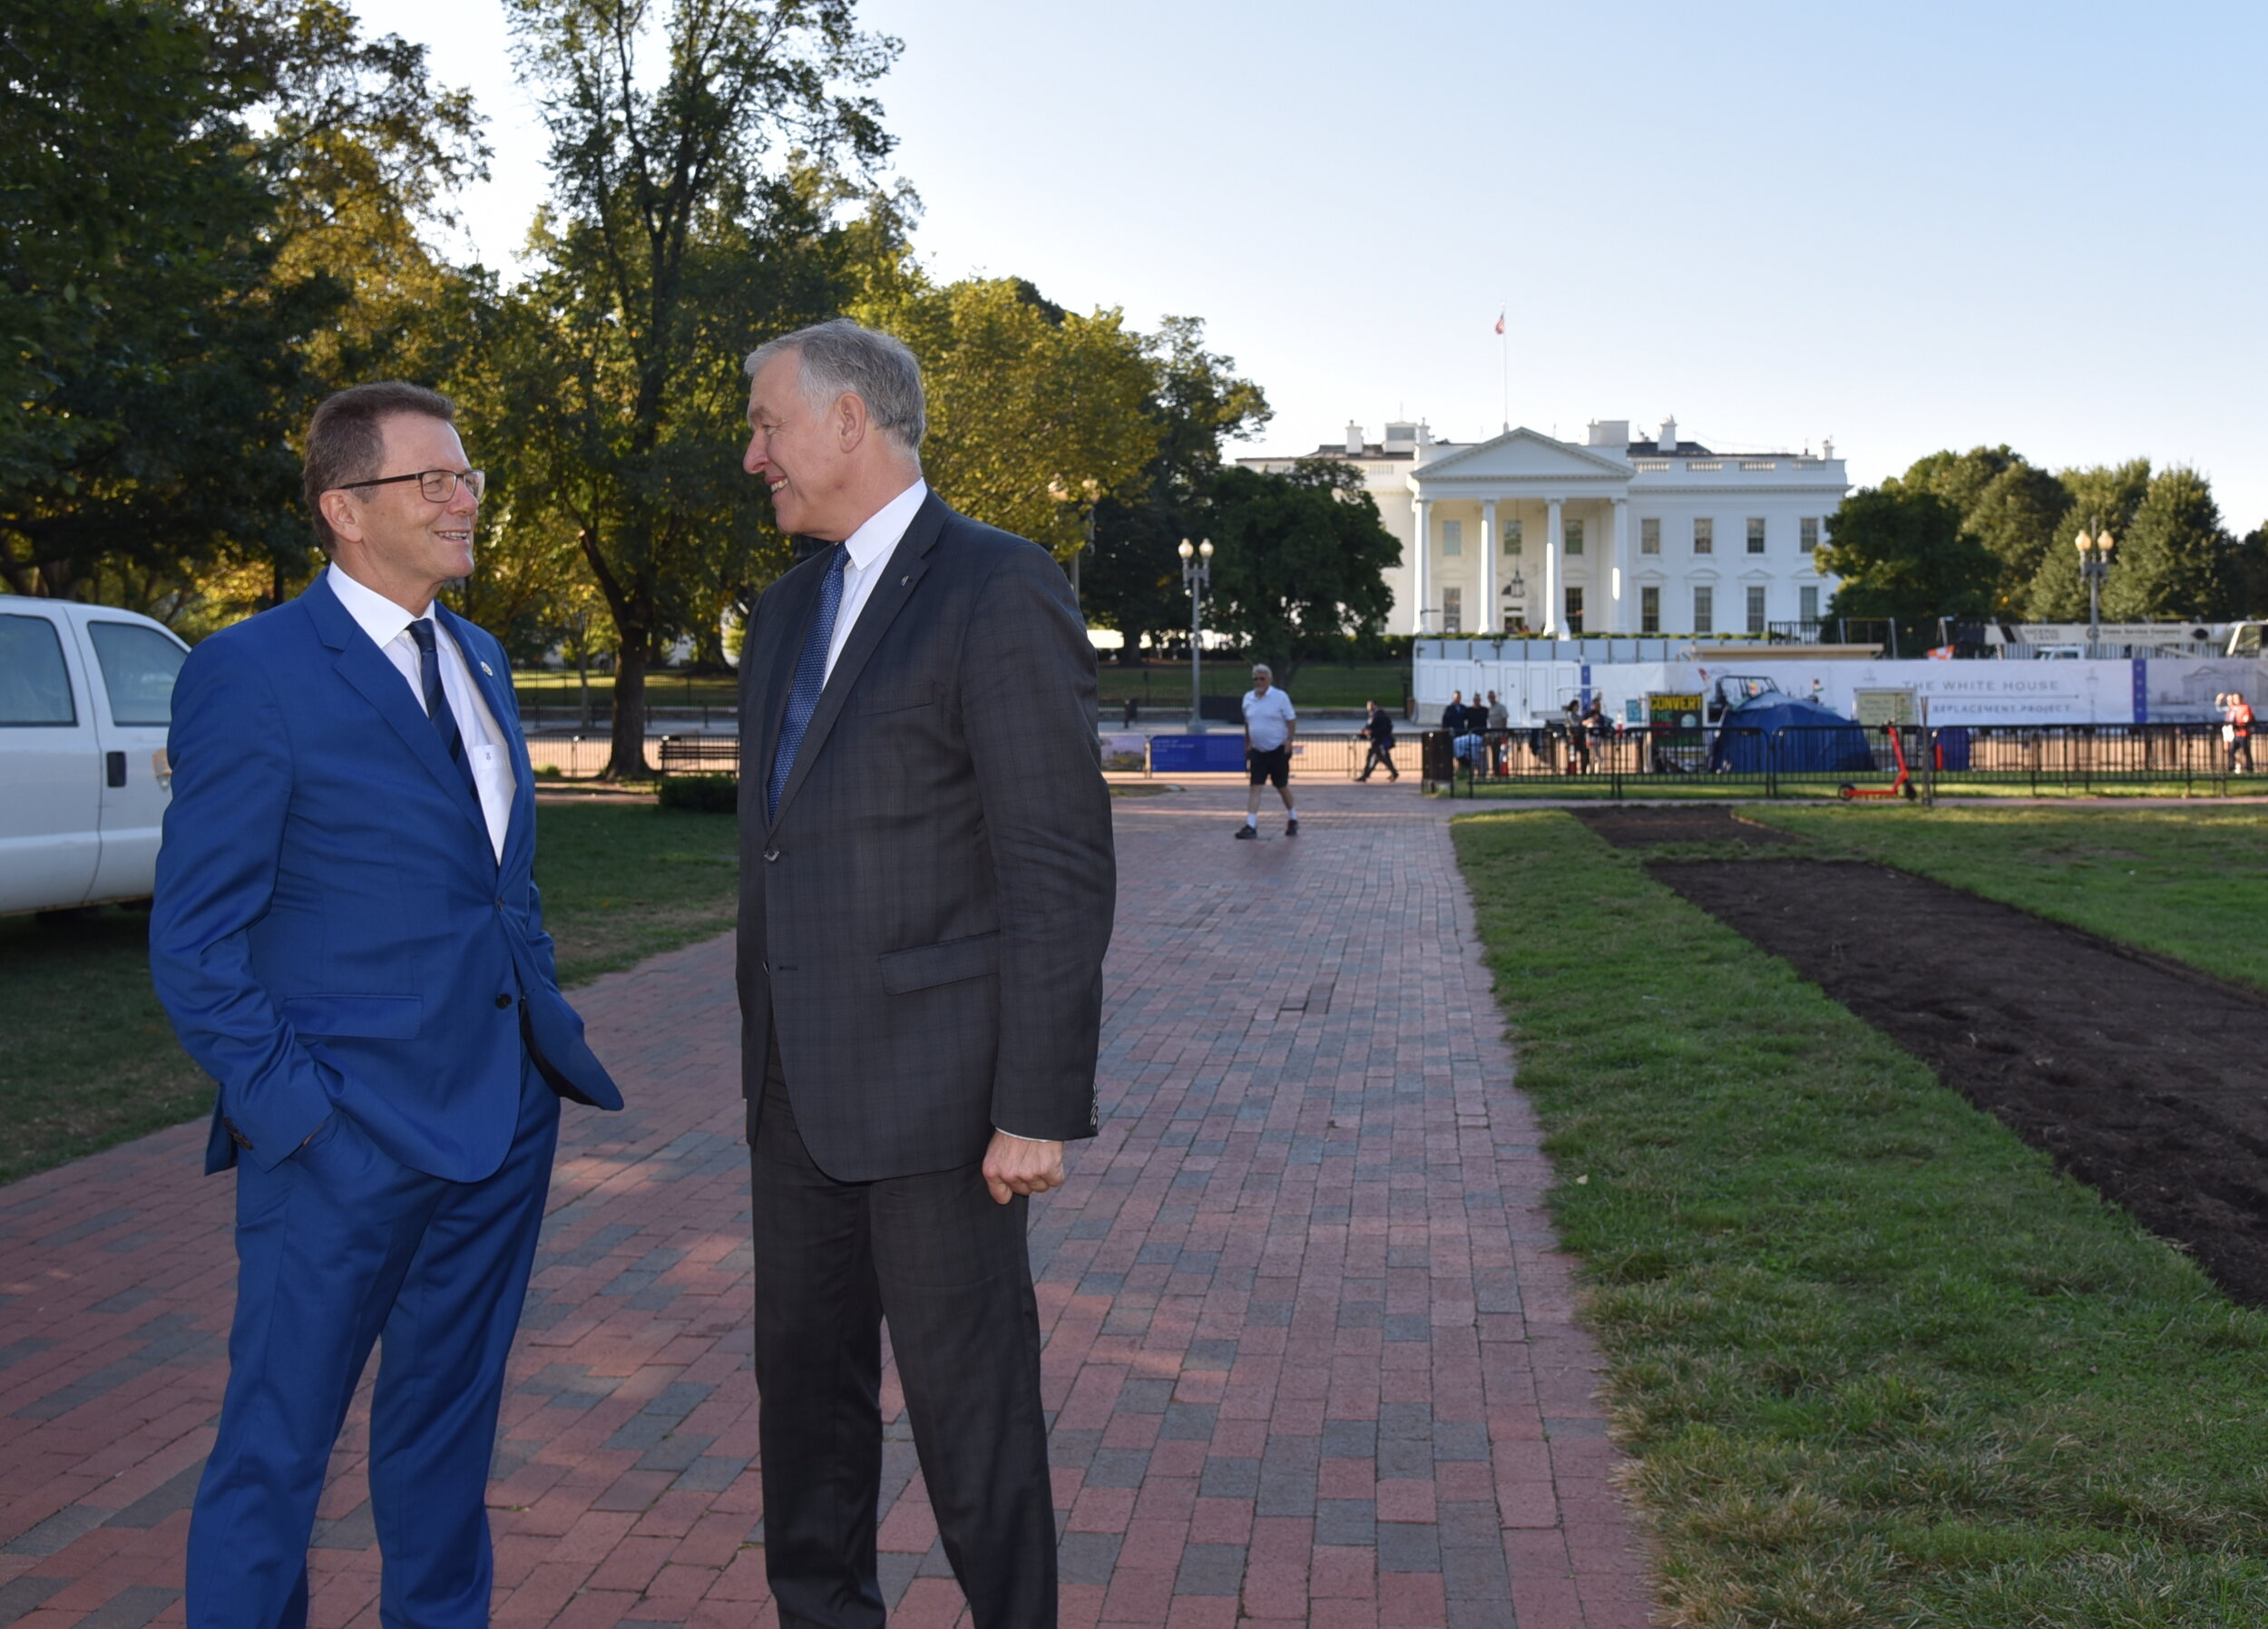 Austrian Ambassador Wolfgang Waldner with Lower Austria State Government Member Martin Eichtinger in Lafayette Square, north of the White House